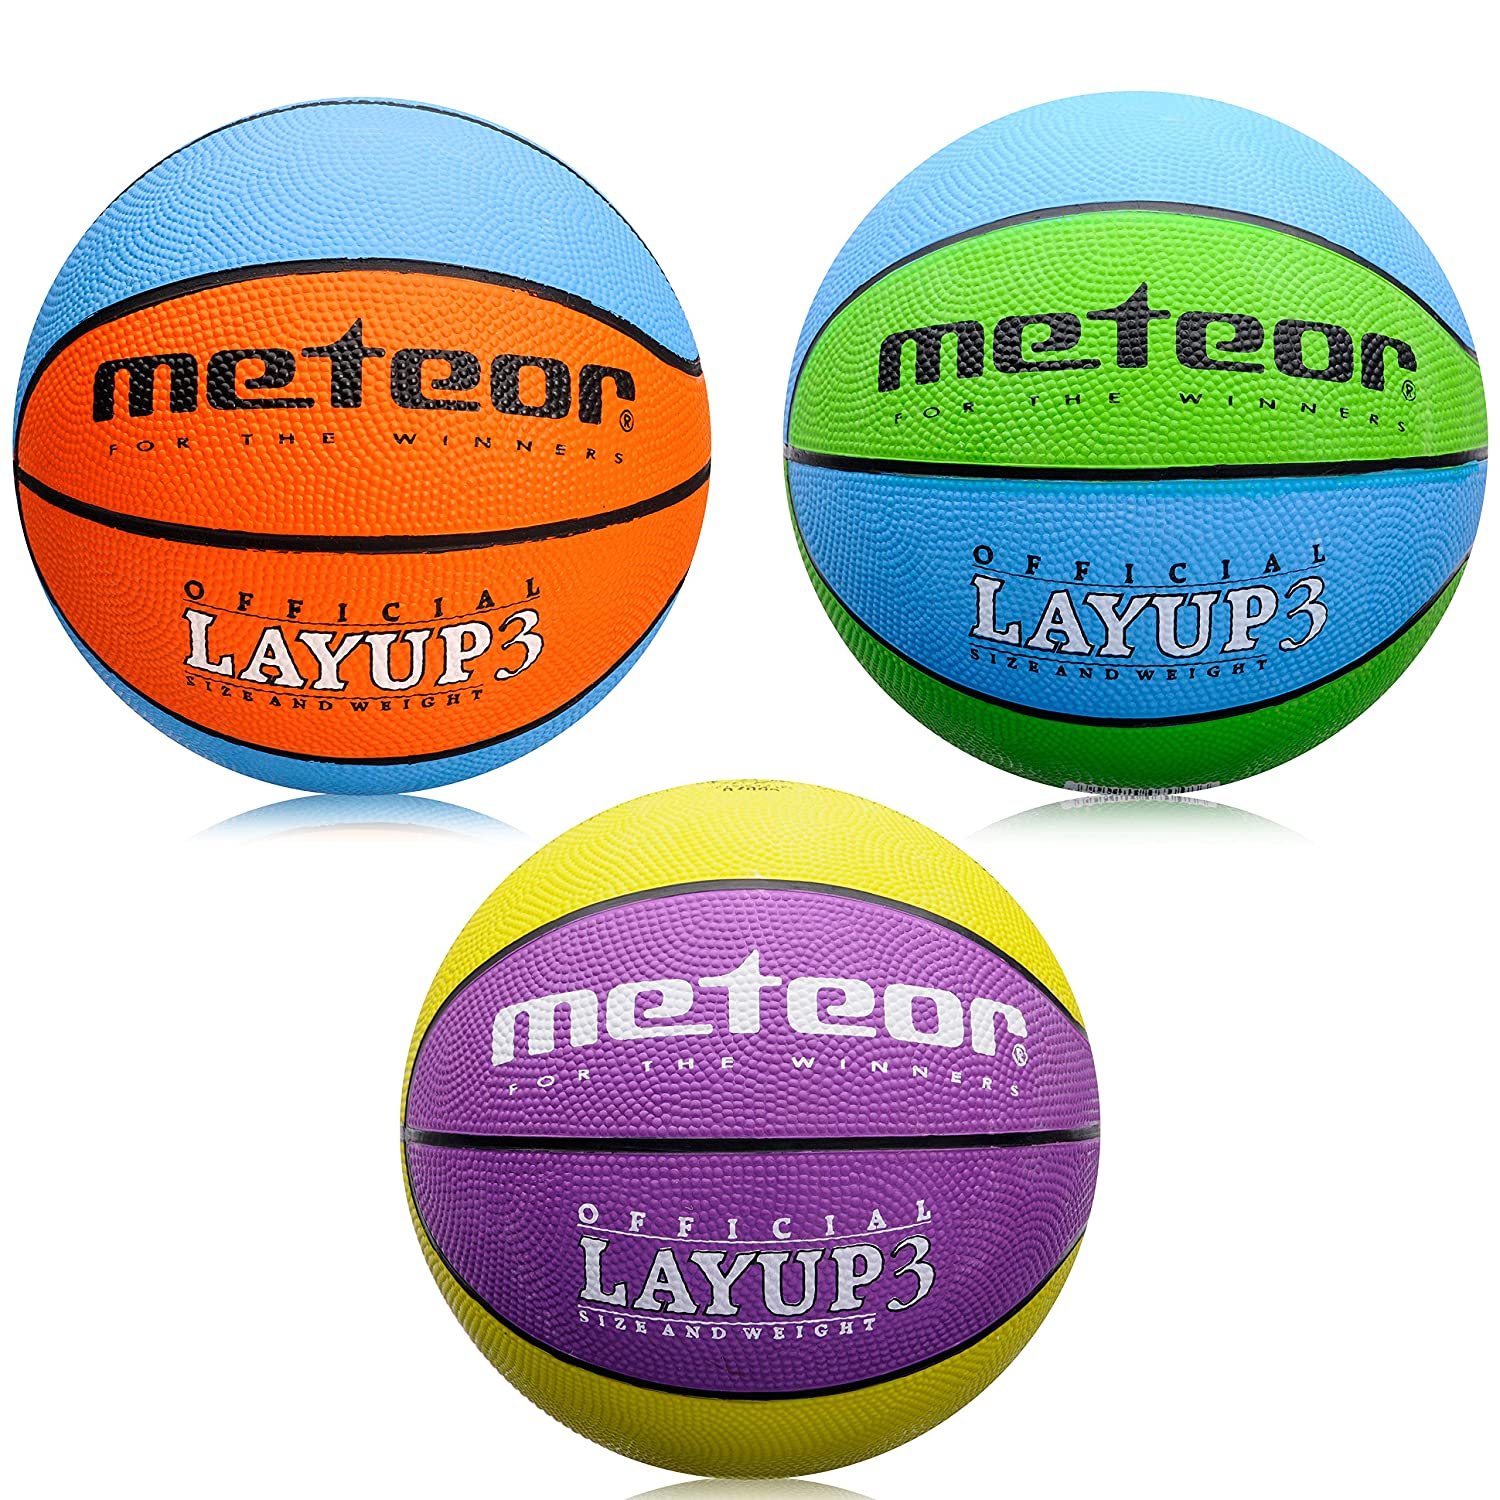 22fc83d23d3 meteor Basketball Ball - Size 3 ideal for children Layup  Children   Youth  - 4 to 8 Years Perfect for Training Soft Basketball Basketball With  Non-Slip ...